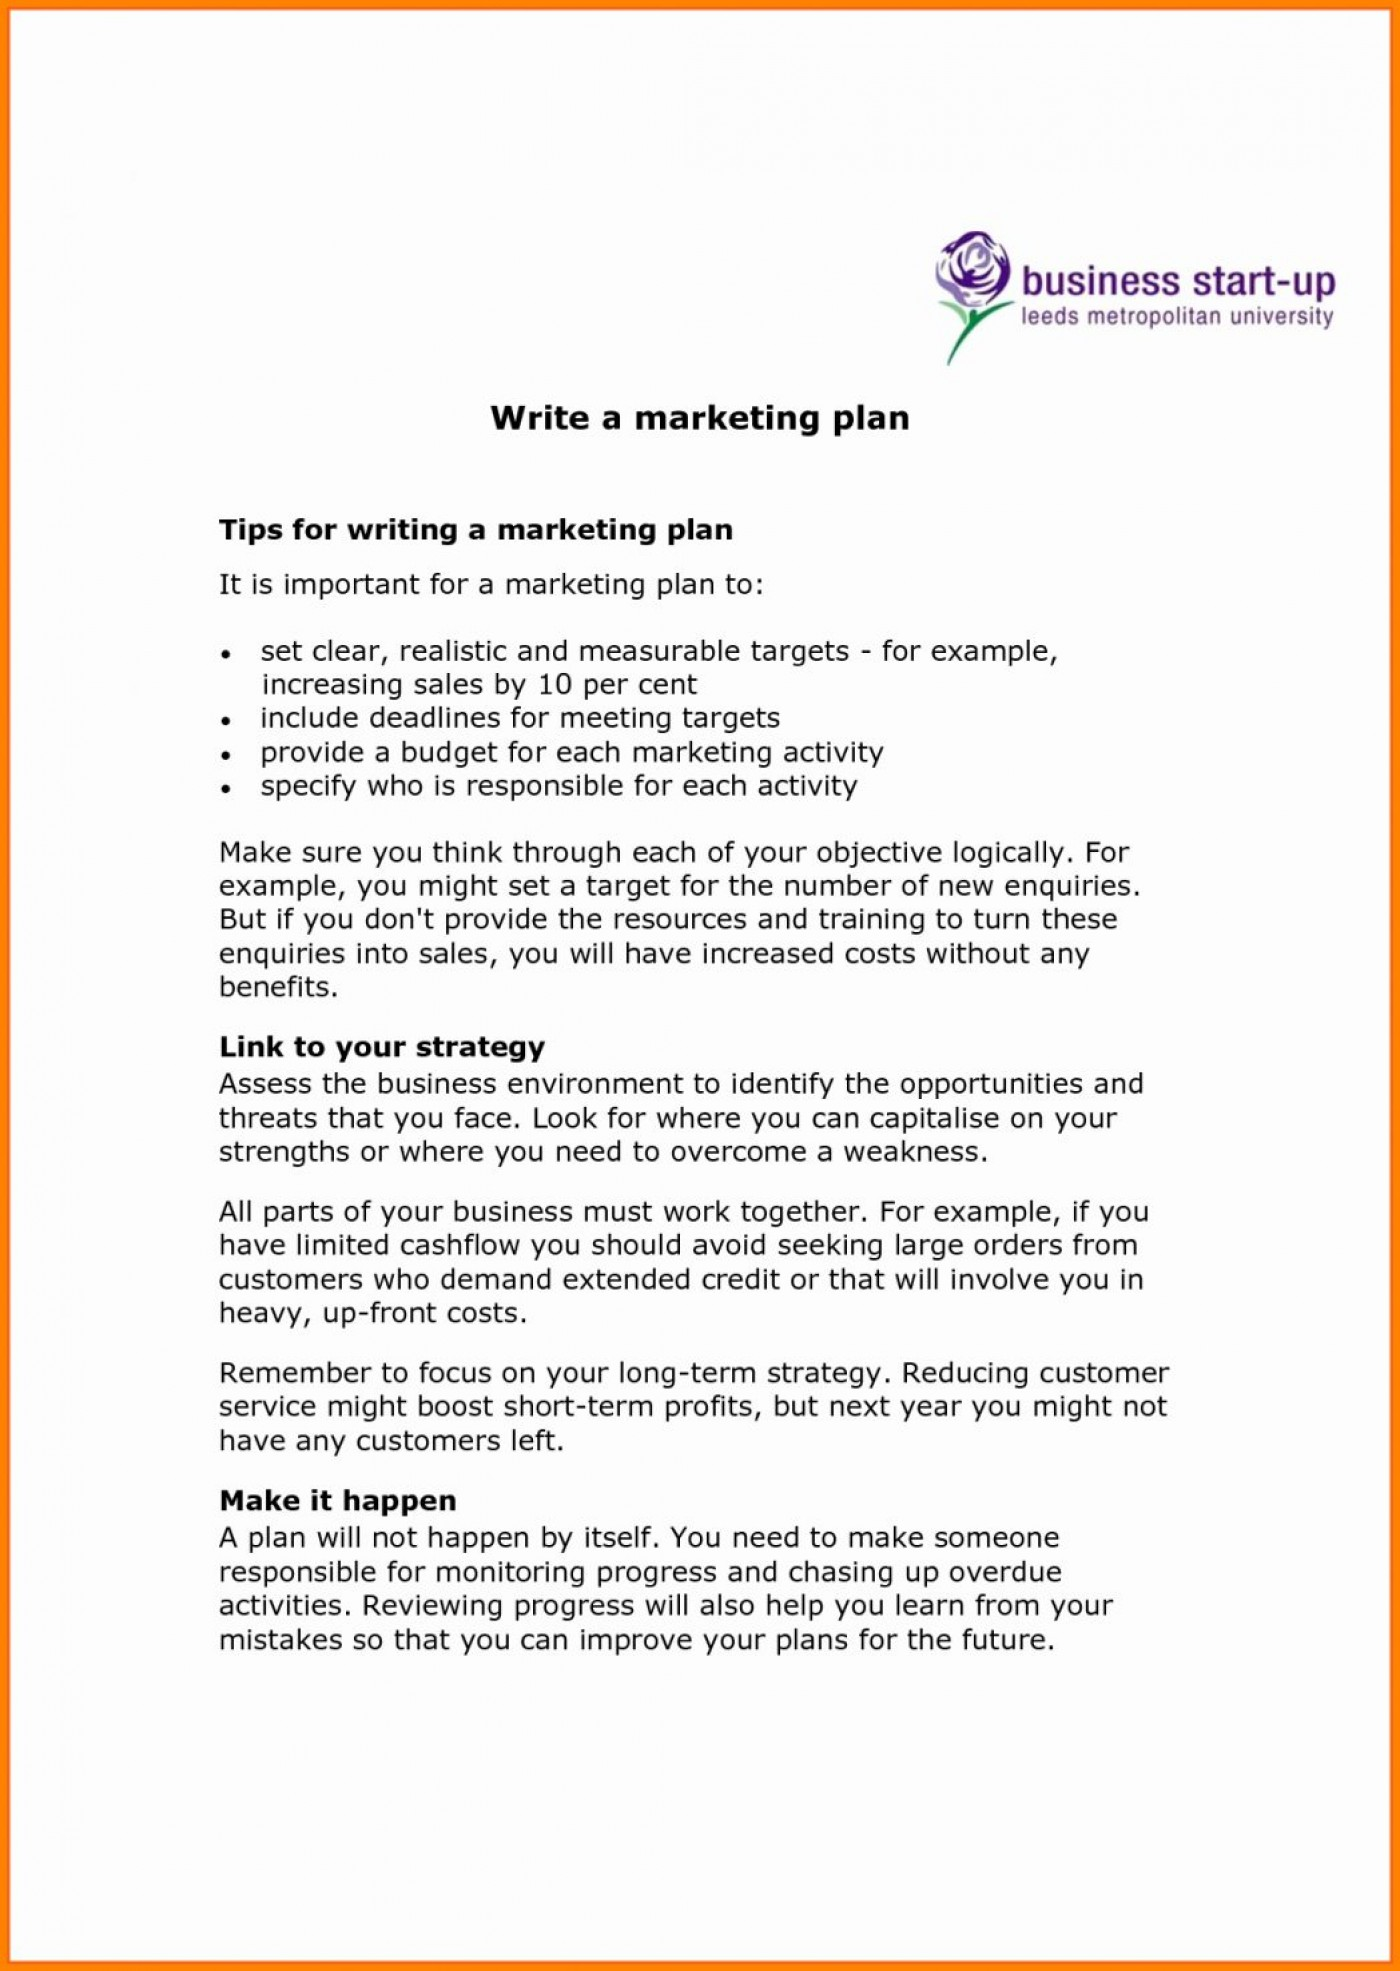 022 Research Paper Parts Of And Its Definition Pdf Marketing Plan Example Business Genxeg Quizlet Sample Proposal Bestf Real Estate Bussines Small Company Sba Executive Staggering A 1400